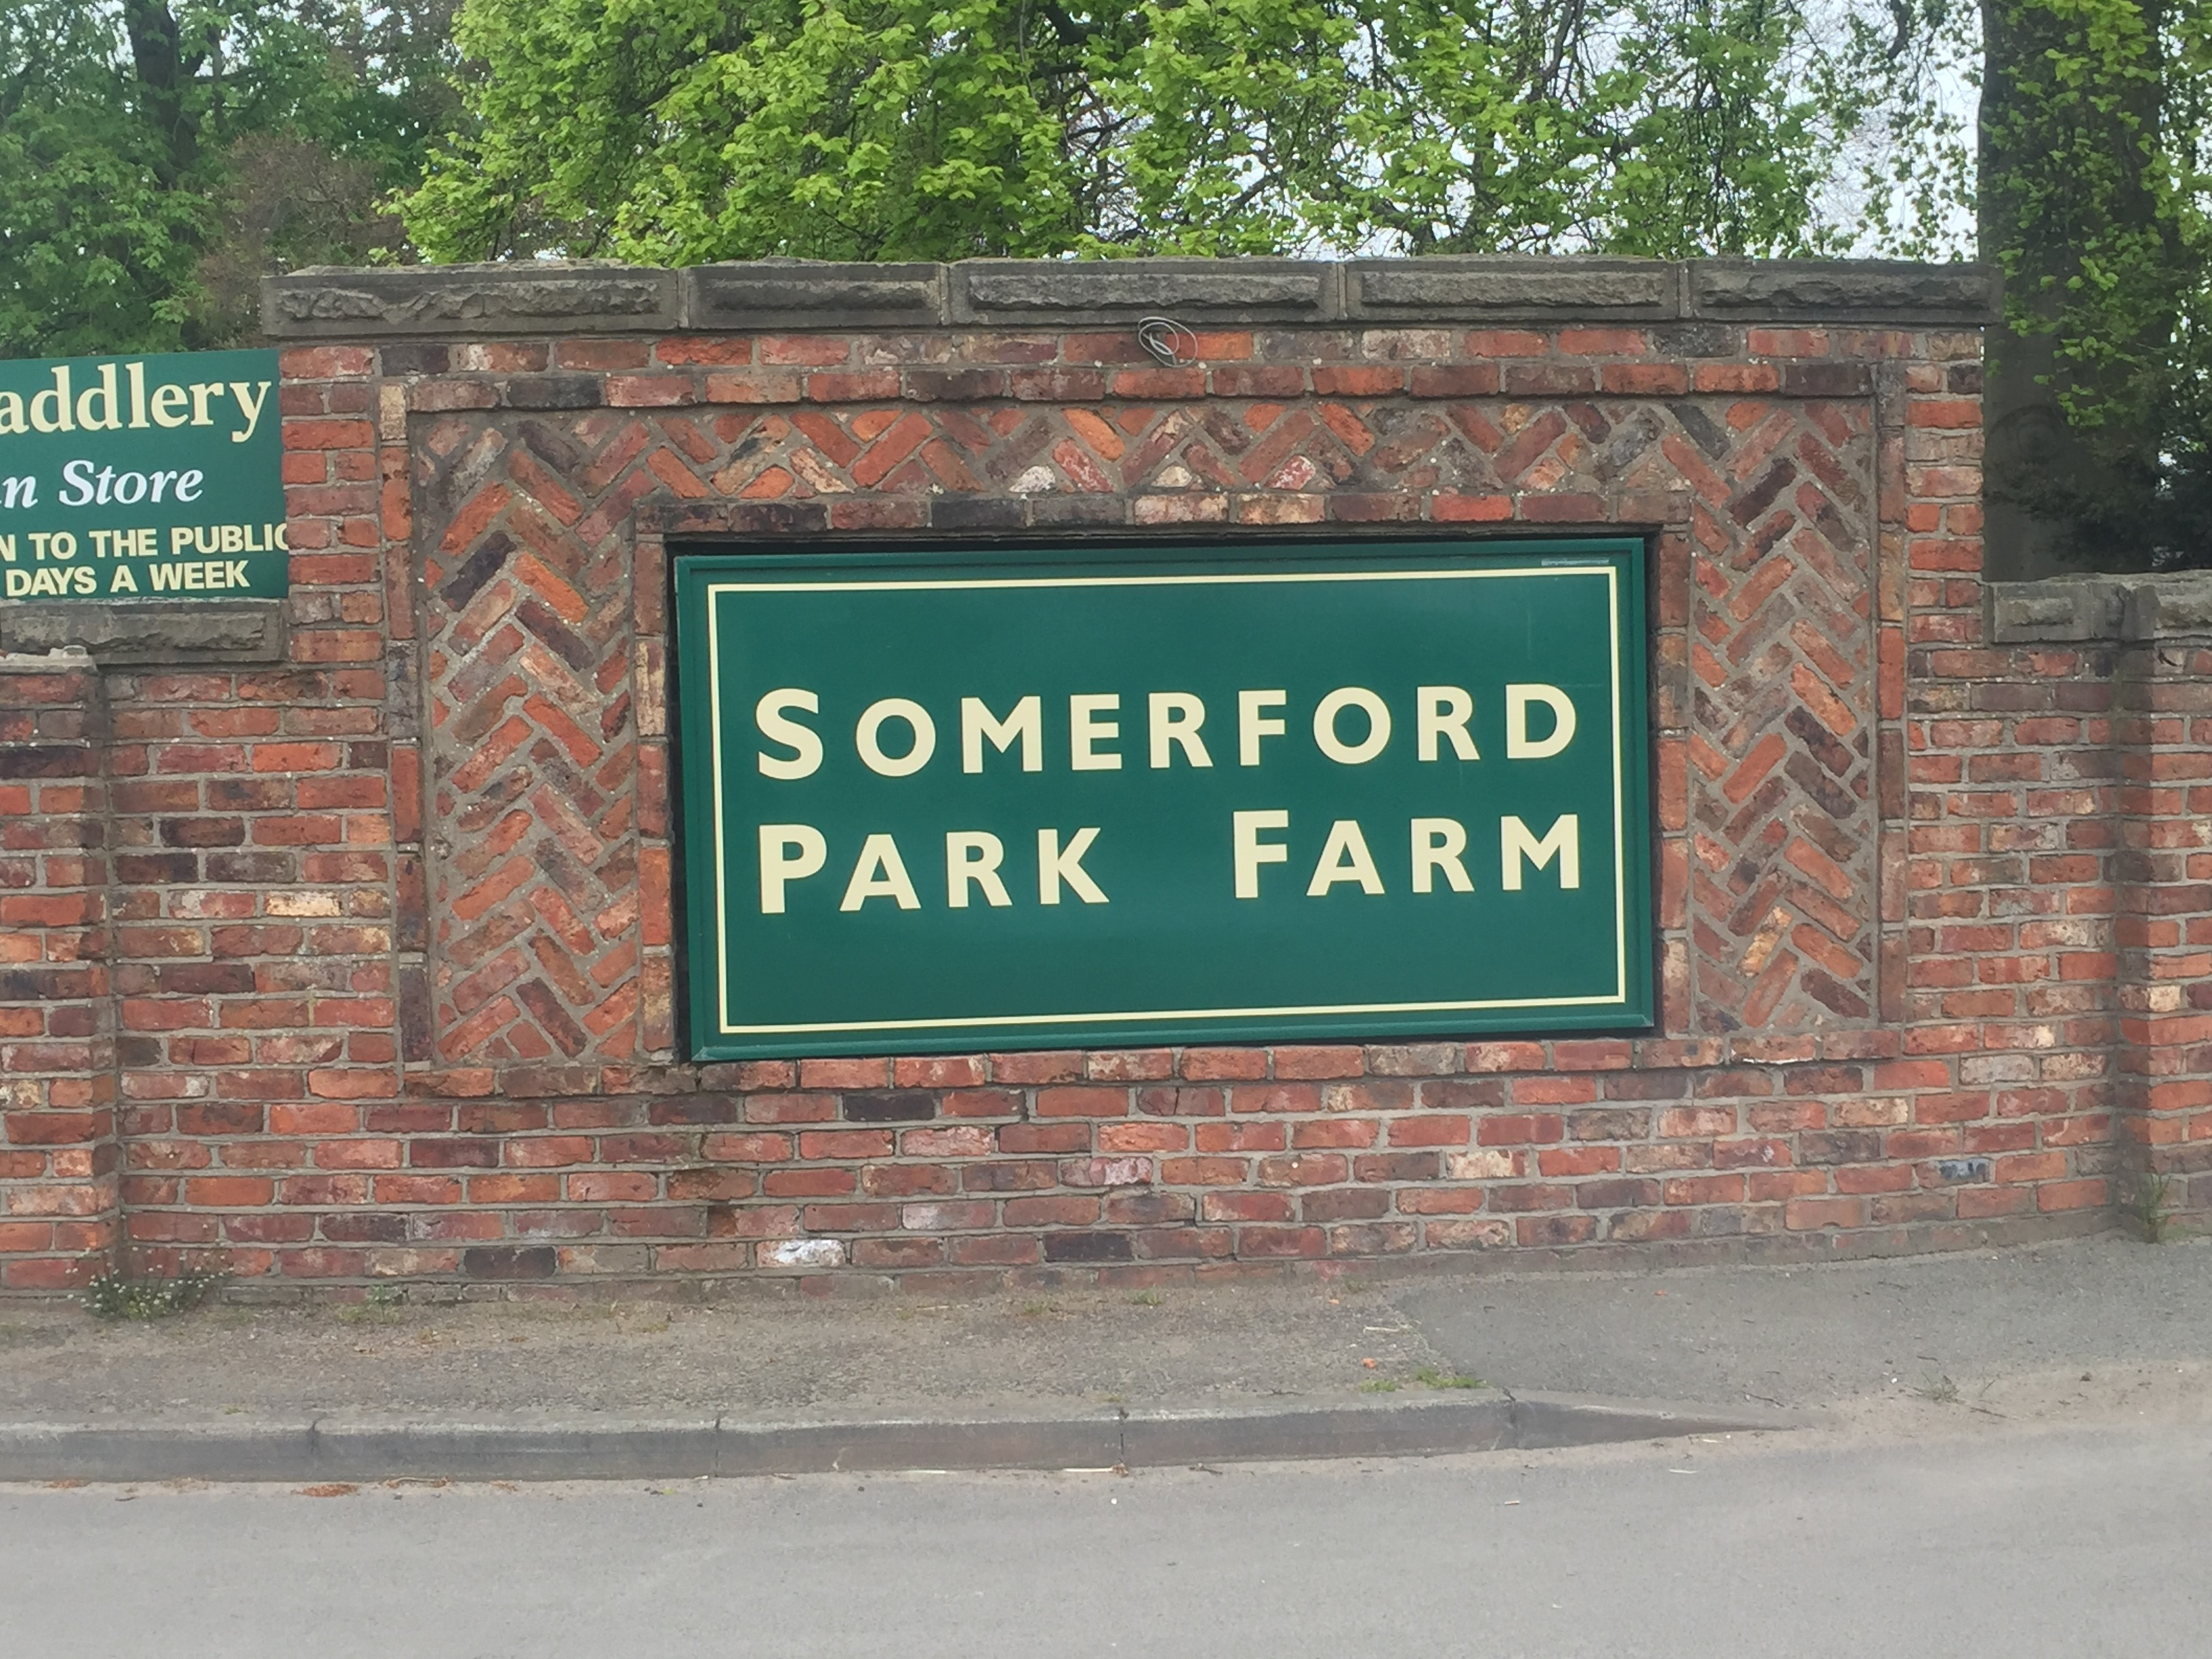 Somerford Park Farm